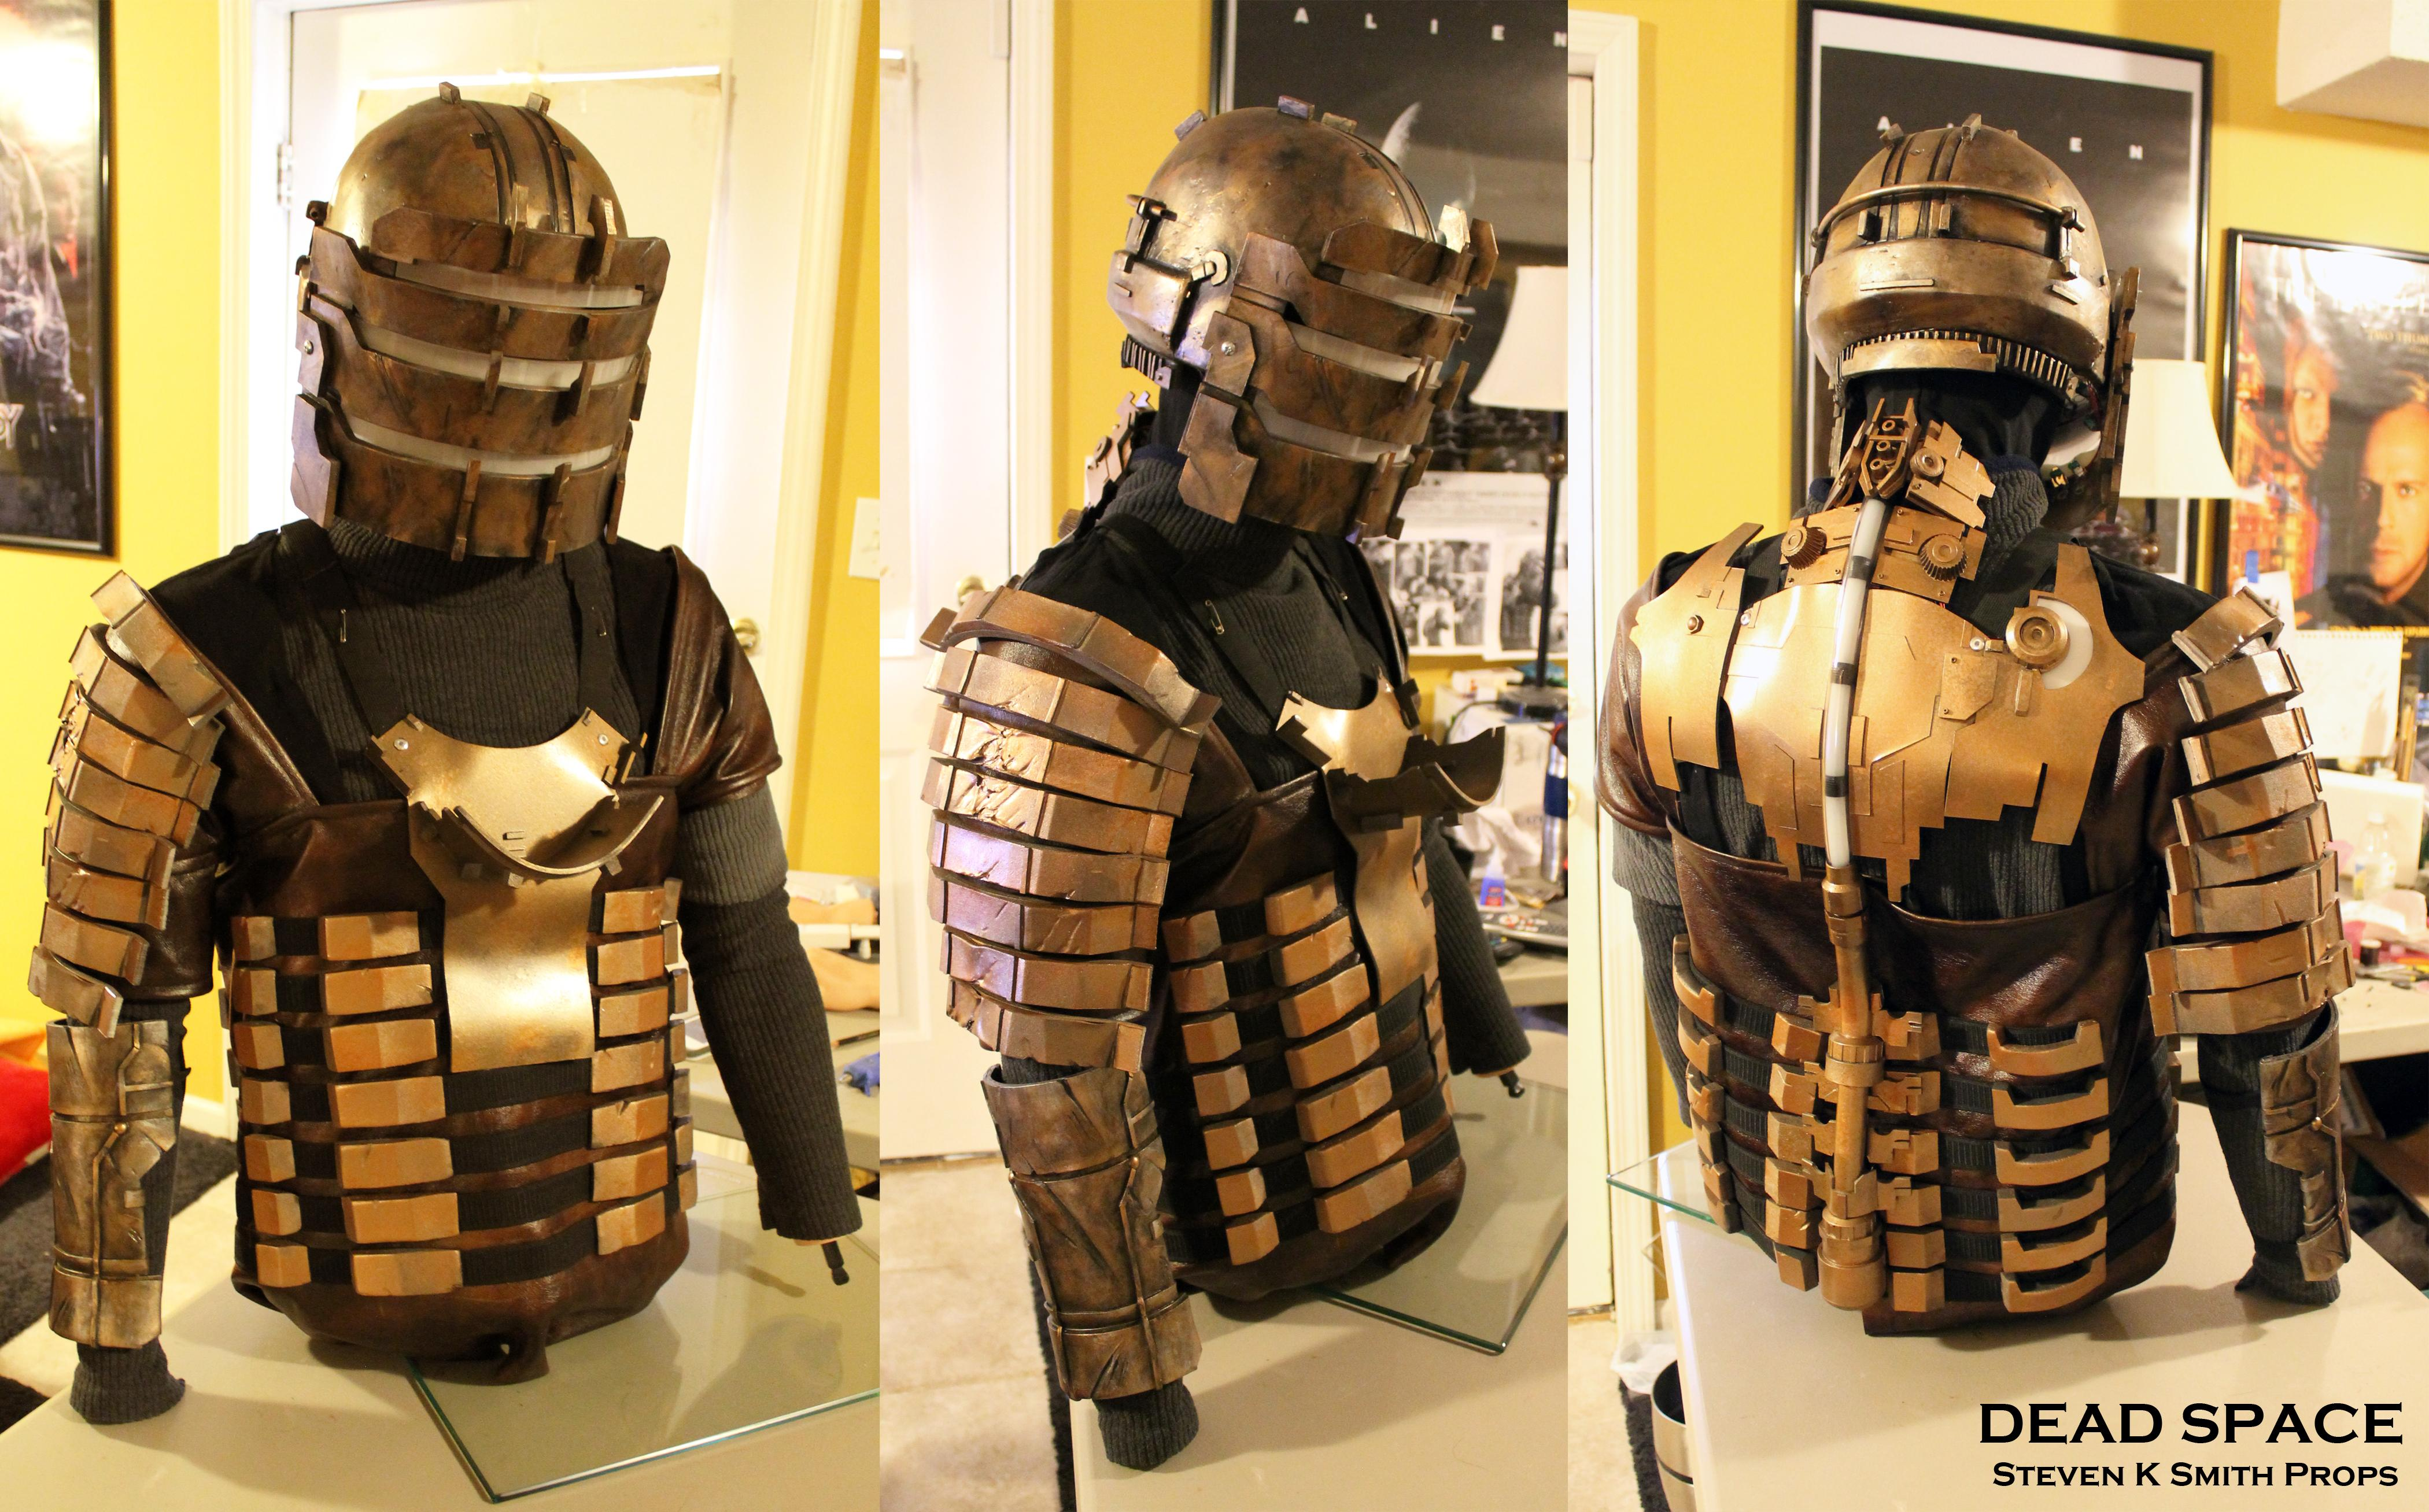 isaac clarke dead space level 3 armored suit � stan